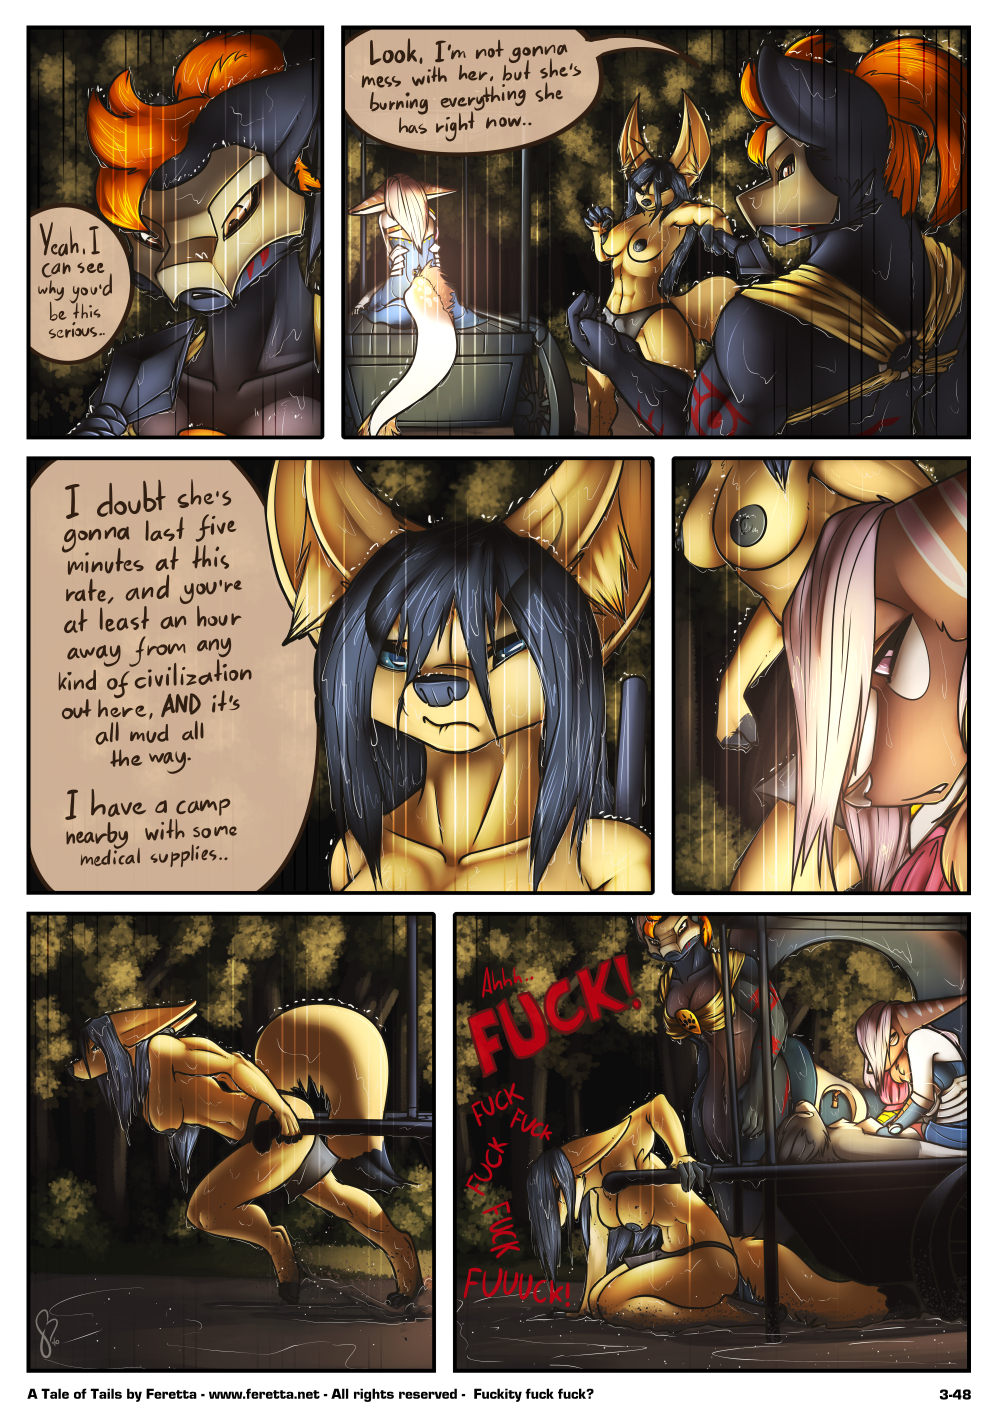 A Tale of Tails, 3-48